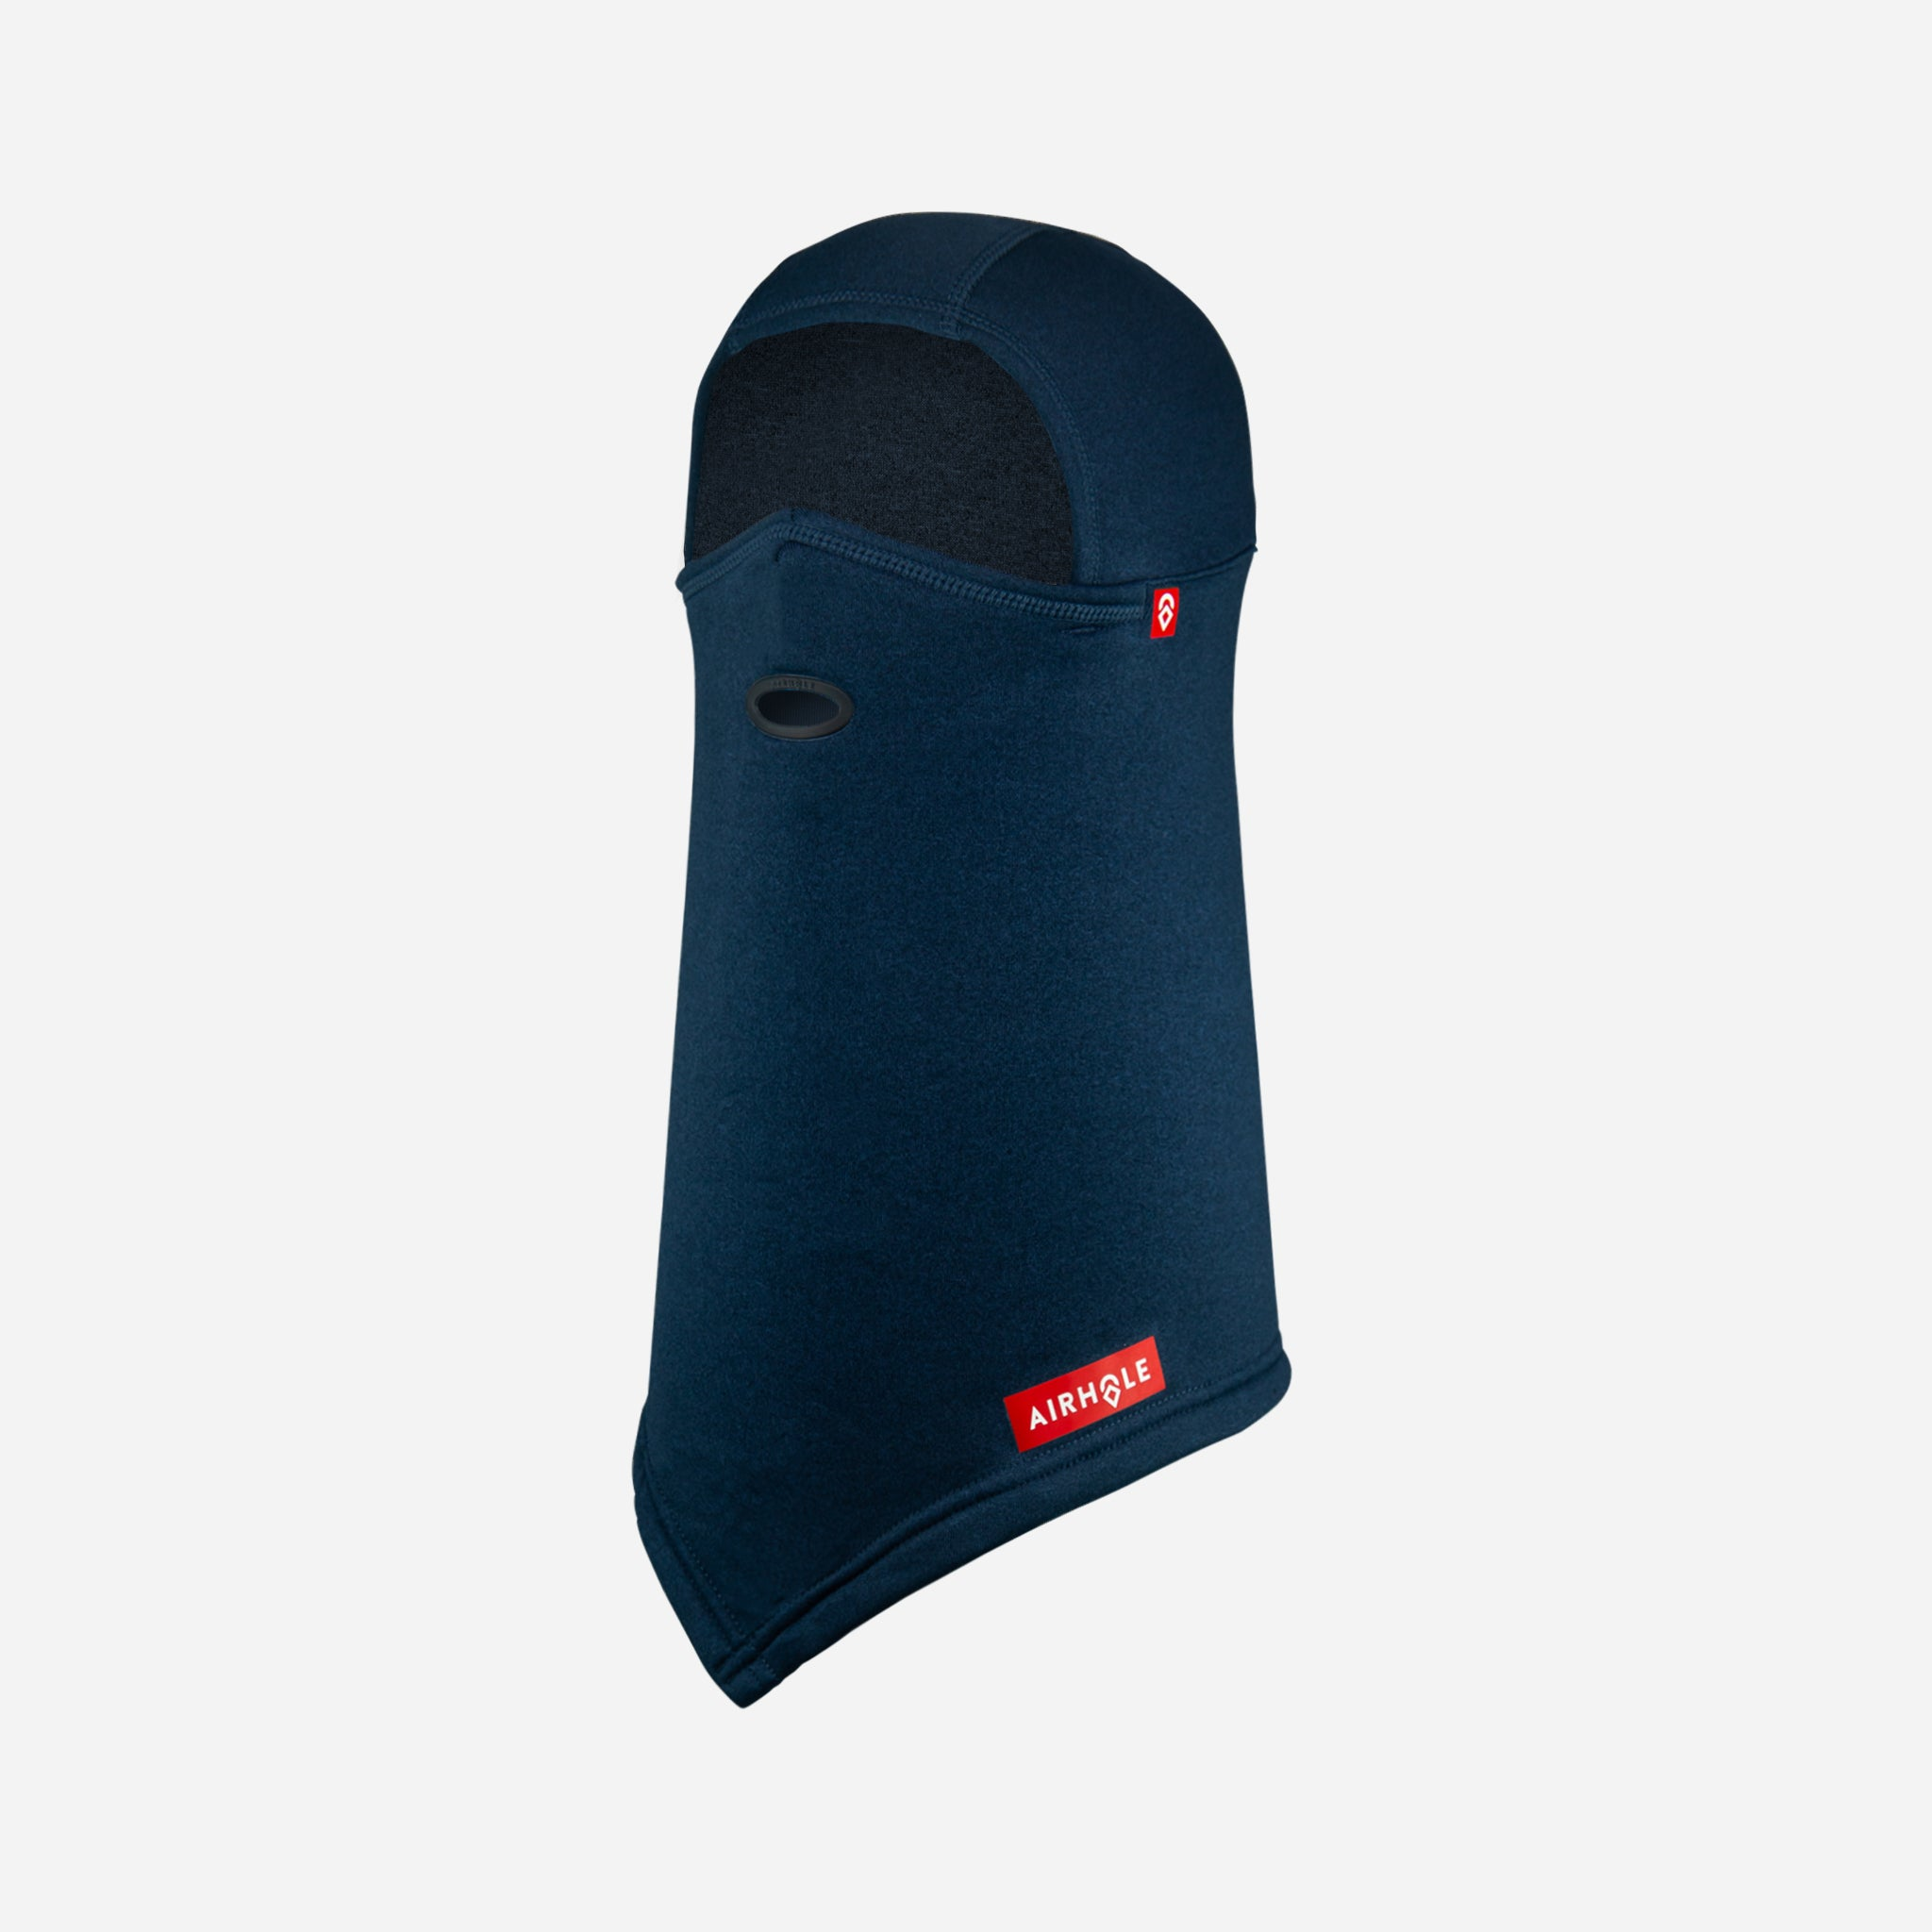 Balaclava Hinge Polar Heather Marine